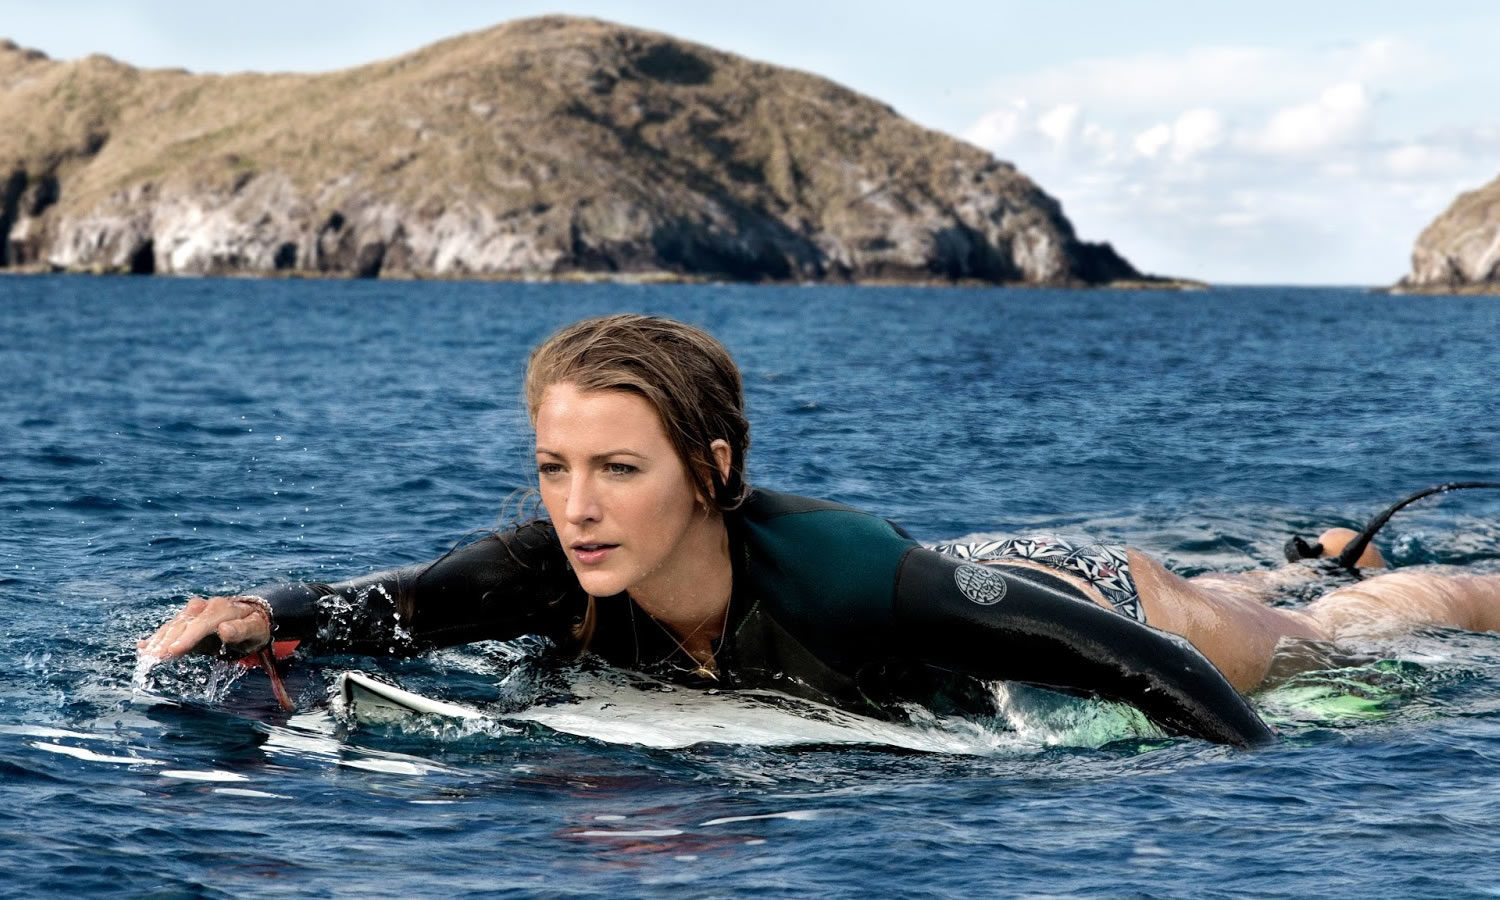 Crítica: Águas Rasas (The Shallows, EUA, 2016)